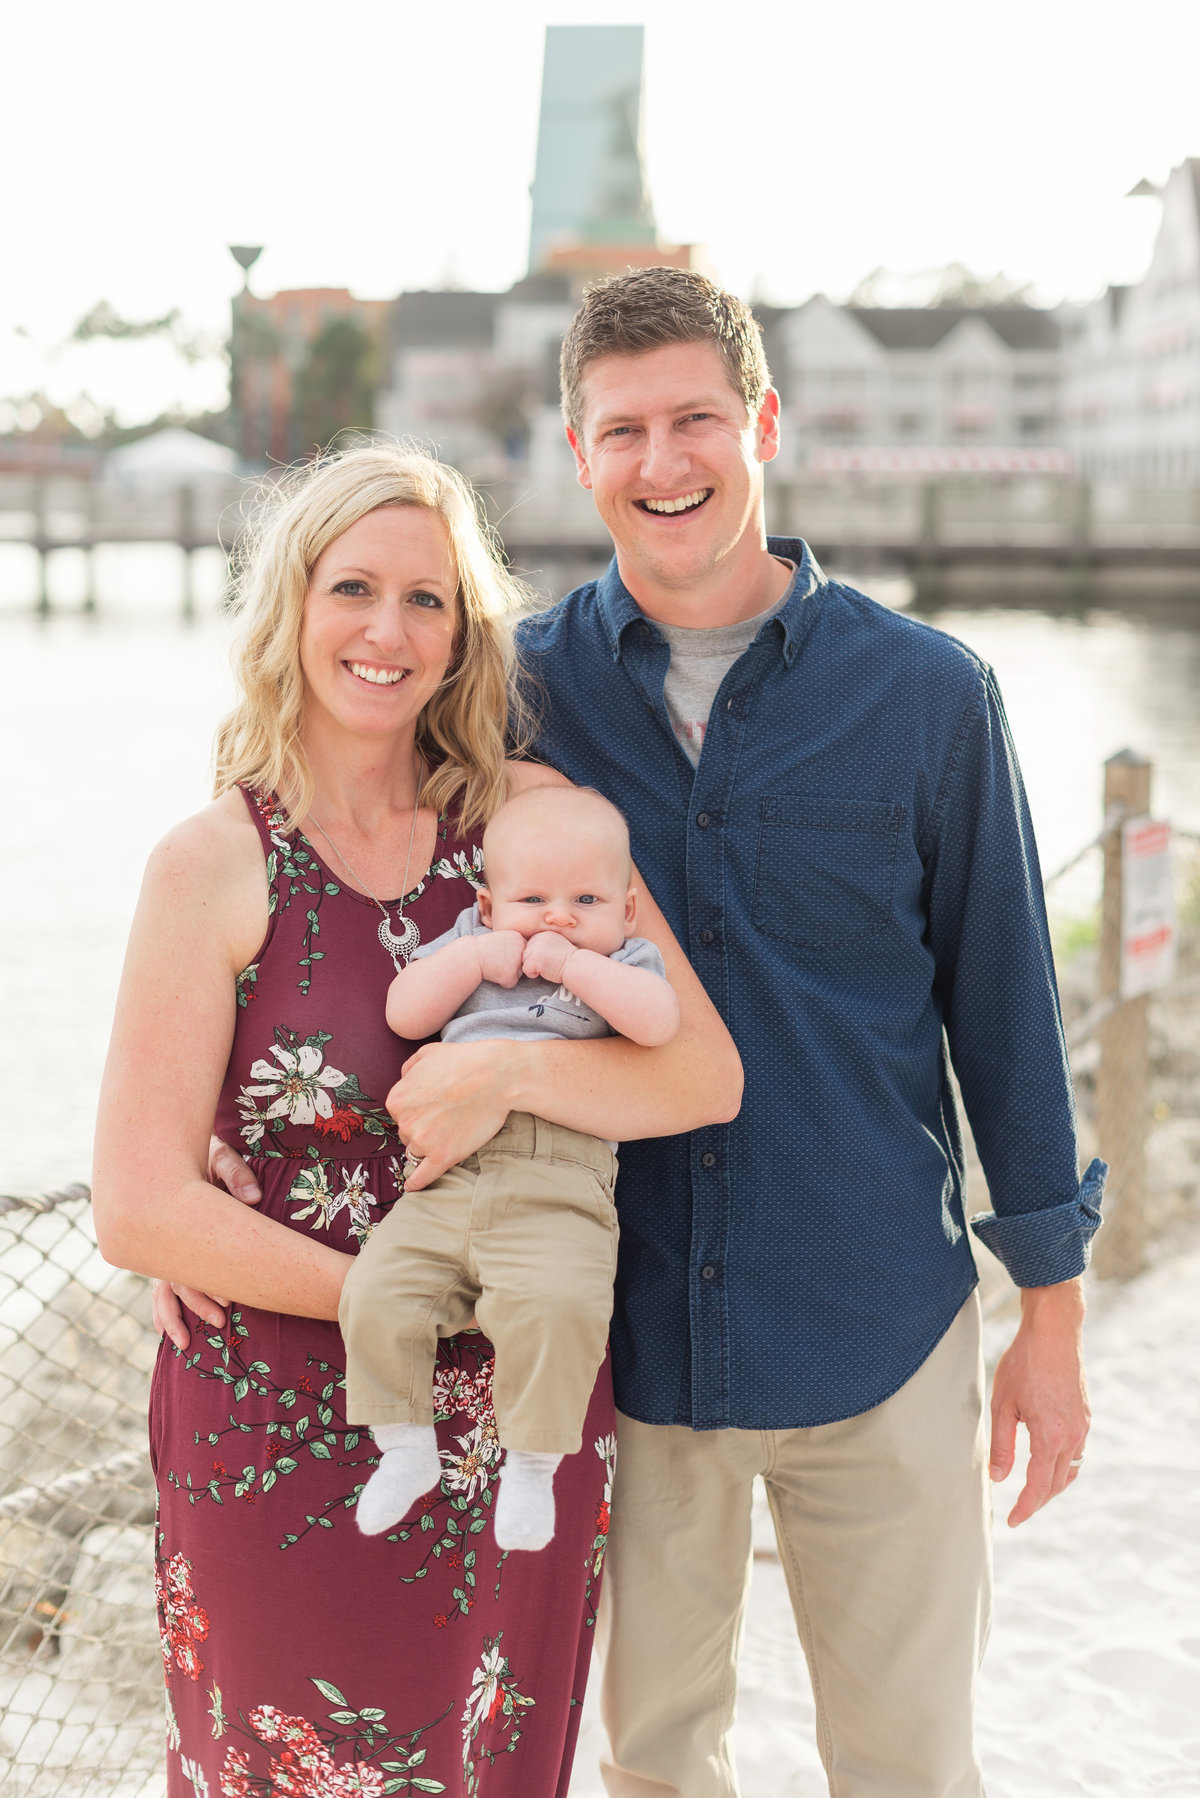 Disney Family Photography at the Boardwalk, Disney Family Photography at the Beach Club